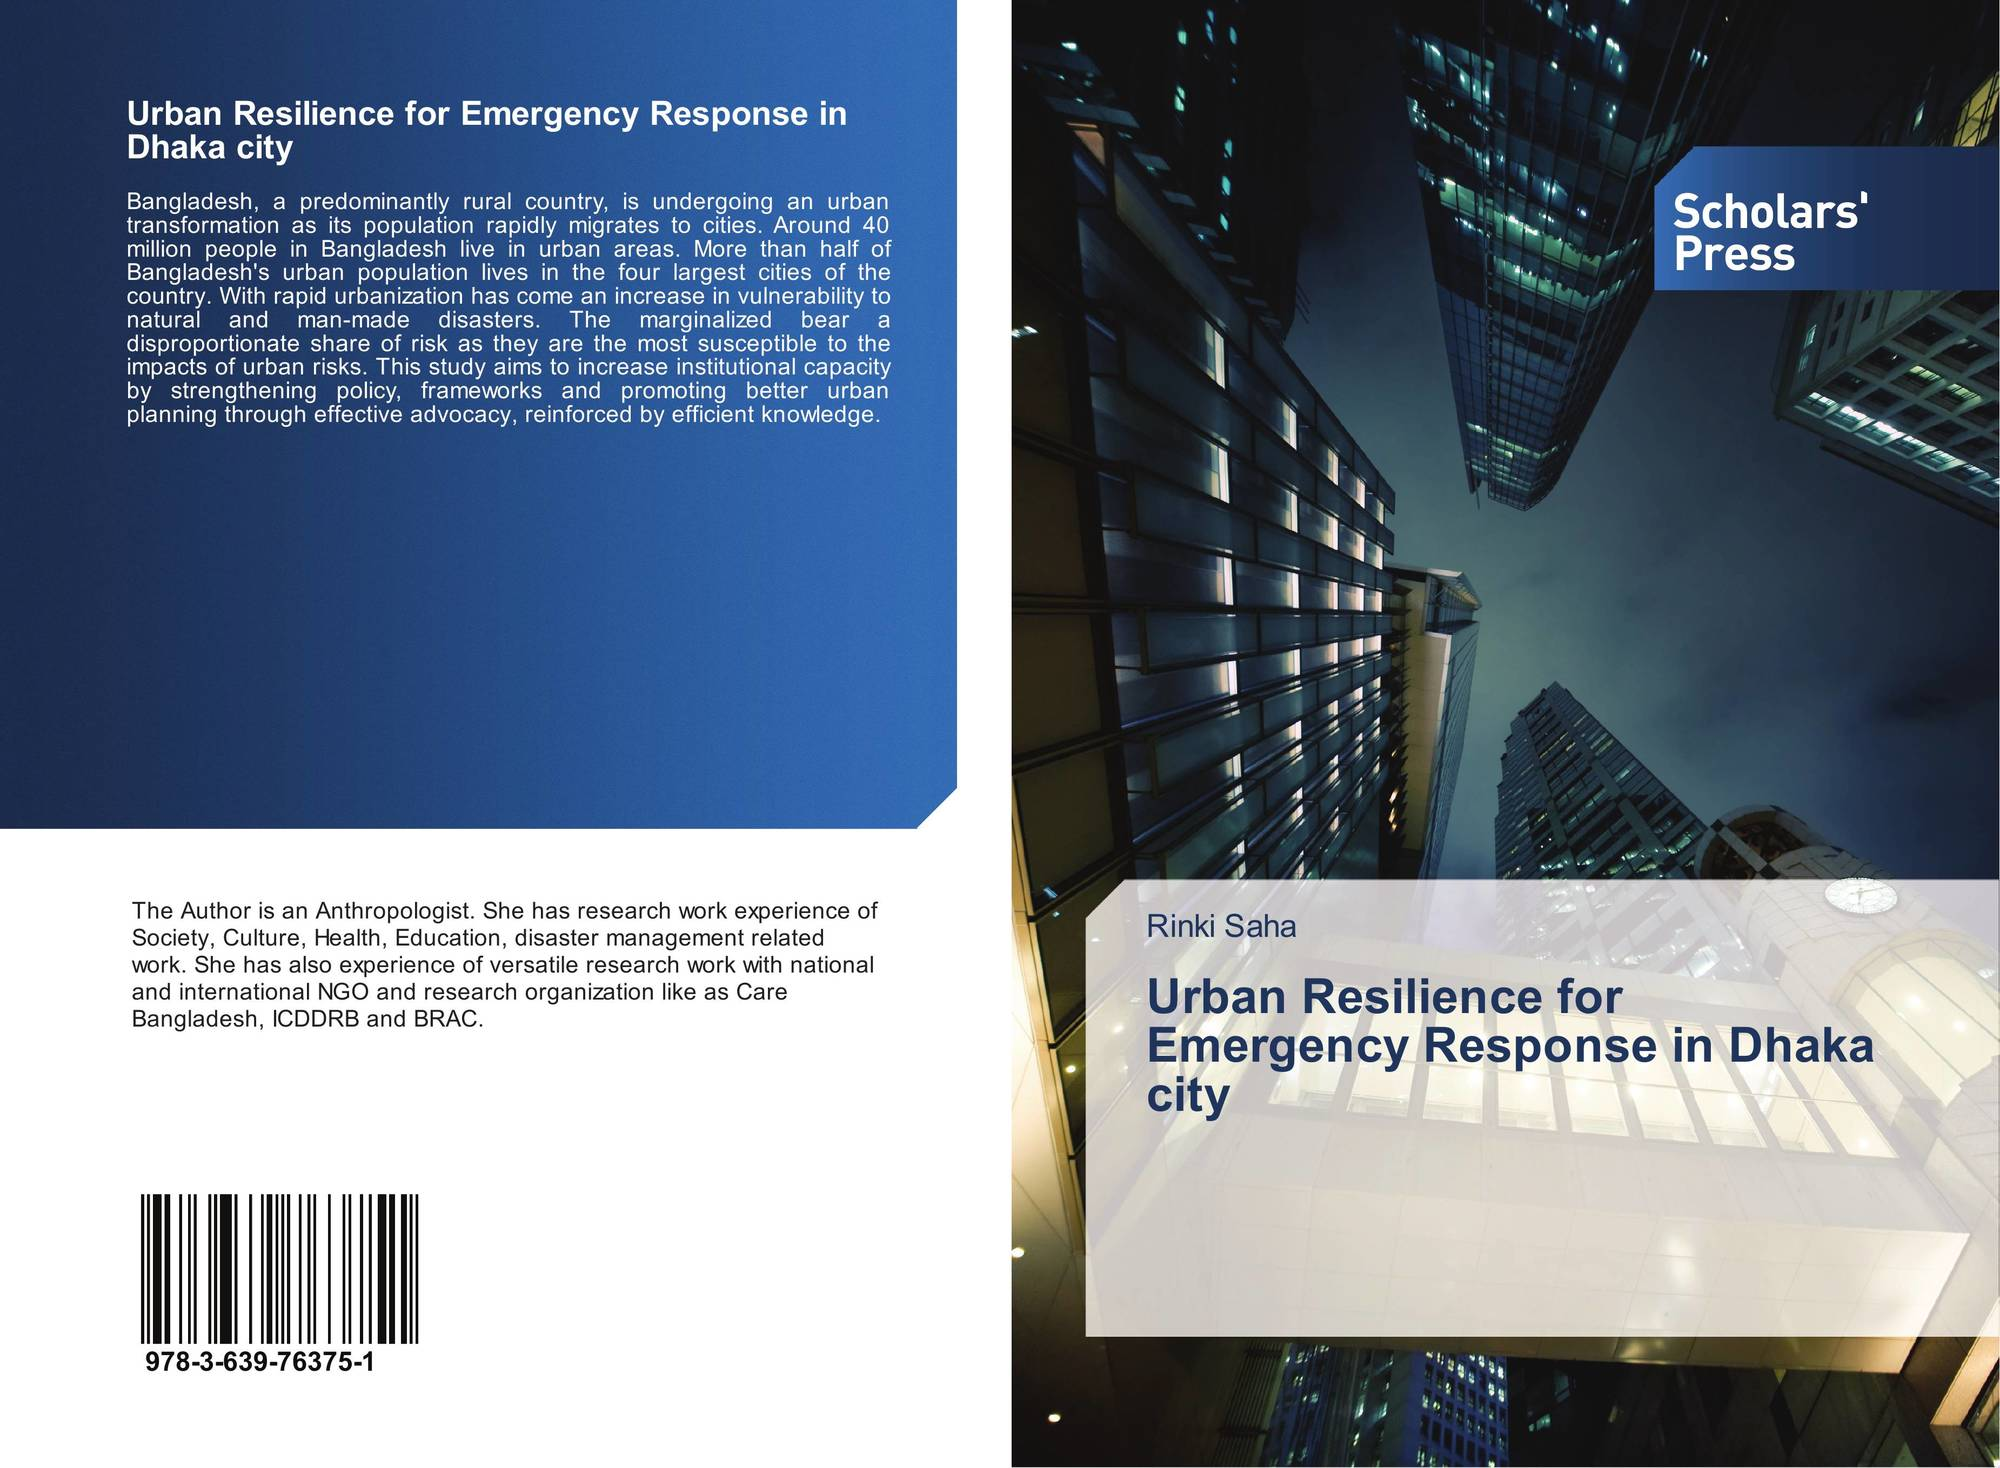 Urban Resilience for Emergency Response in Dhaka city, 978-3